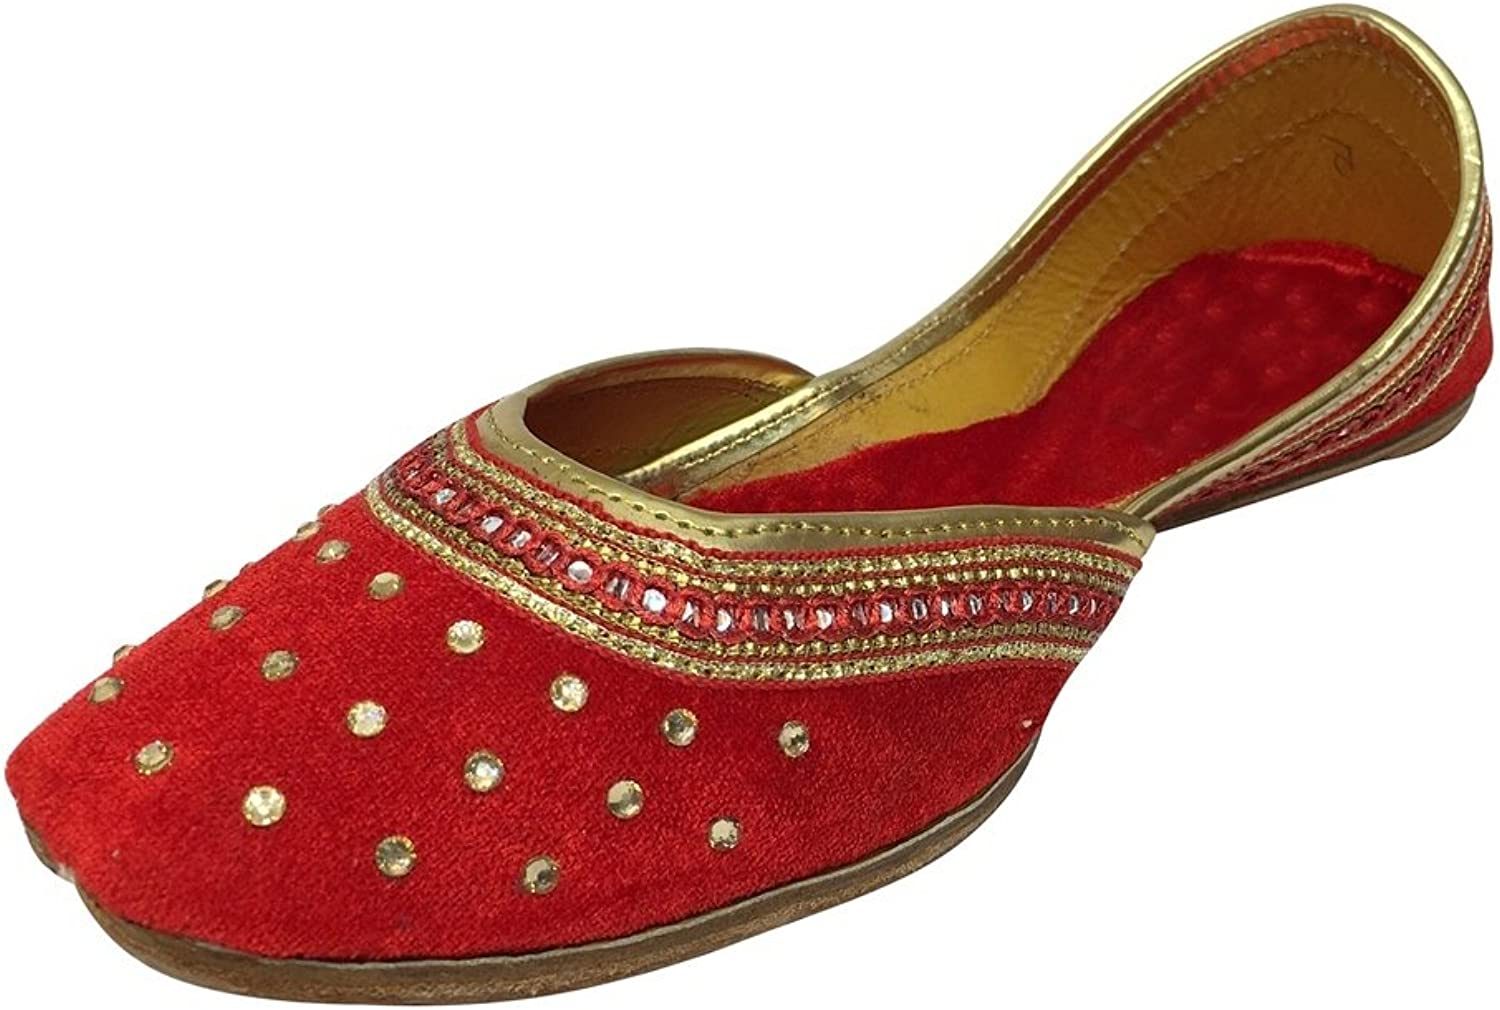 Step n Style Punjabi Jutti Flat shoes Wedding shoes Khussa shoes Indian shoes Juti